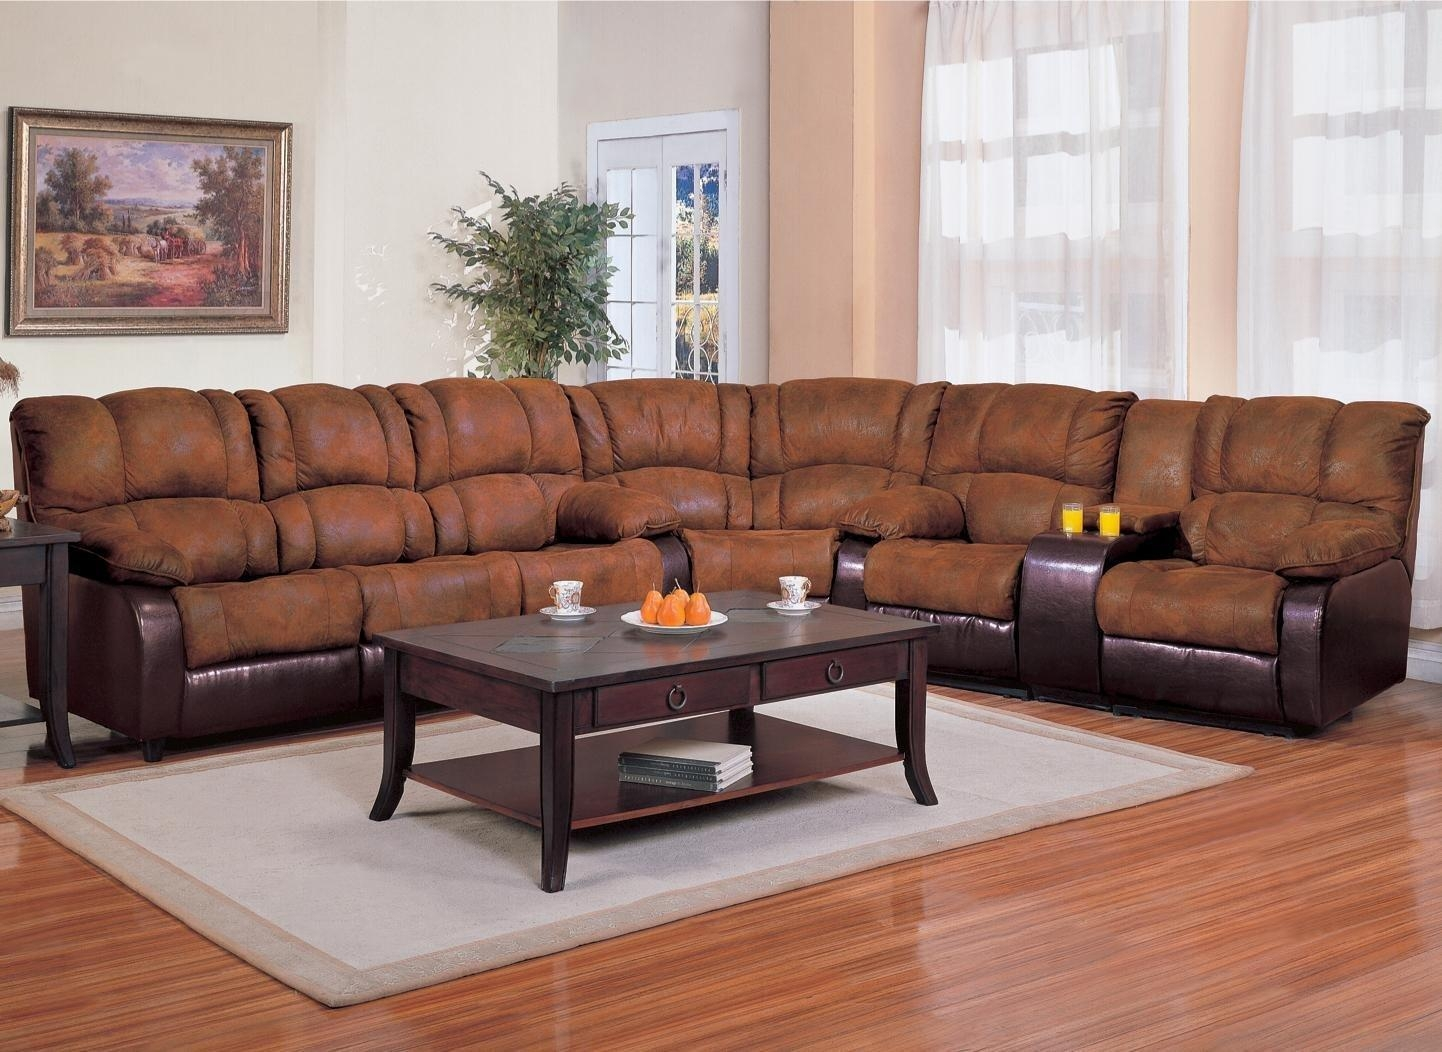 Elegant Bobs Sleeper Sofa With Best Sectional Sleeper Sofa Lp Pertaining To L Shaped Sectional Sleeper Sofa (View 17 of 20)